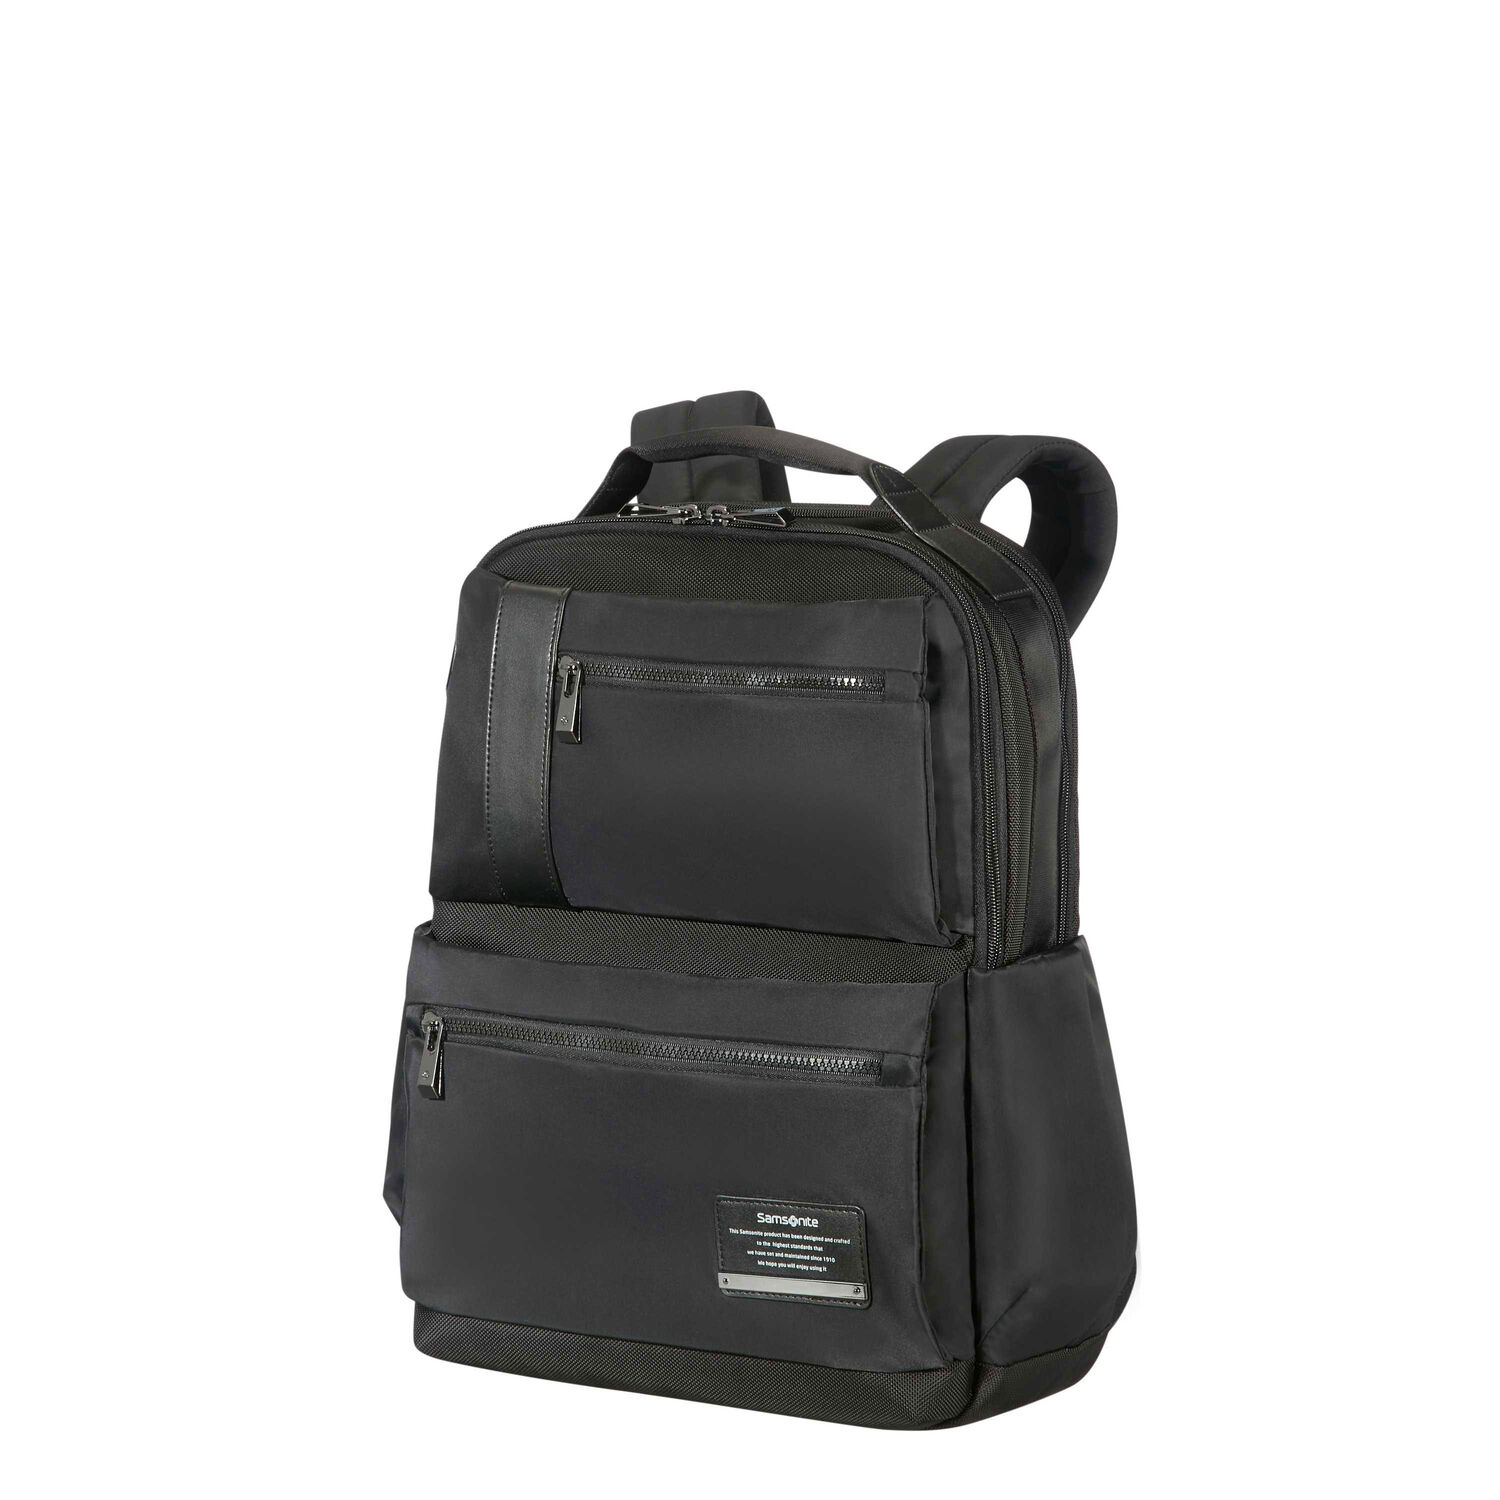 Samsonite Openroad 156quot Laptop Backpack In The Color Jet